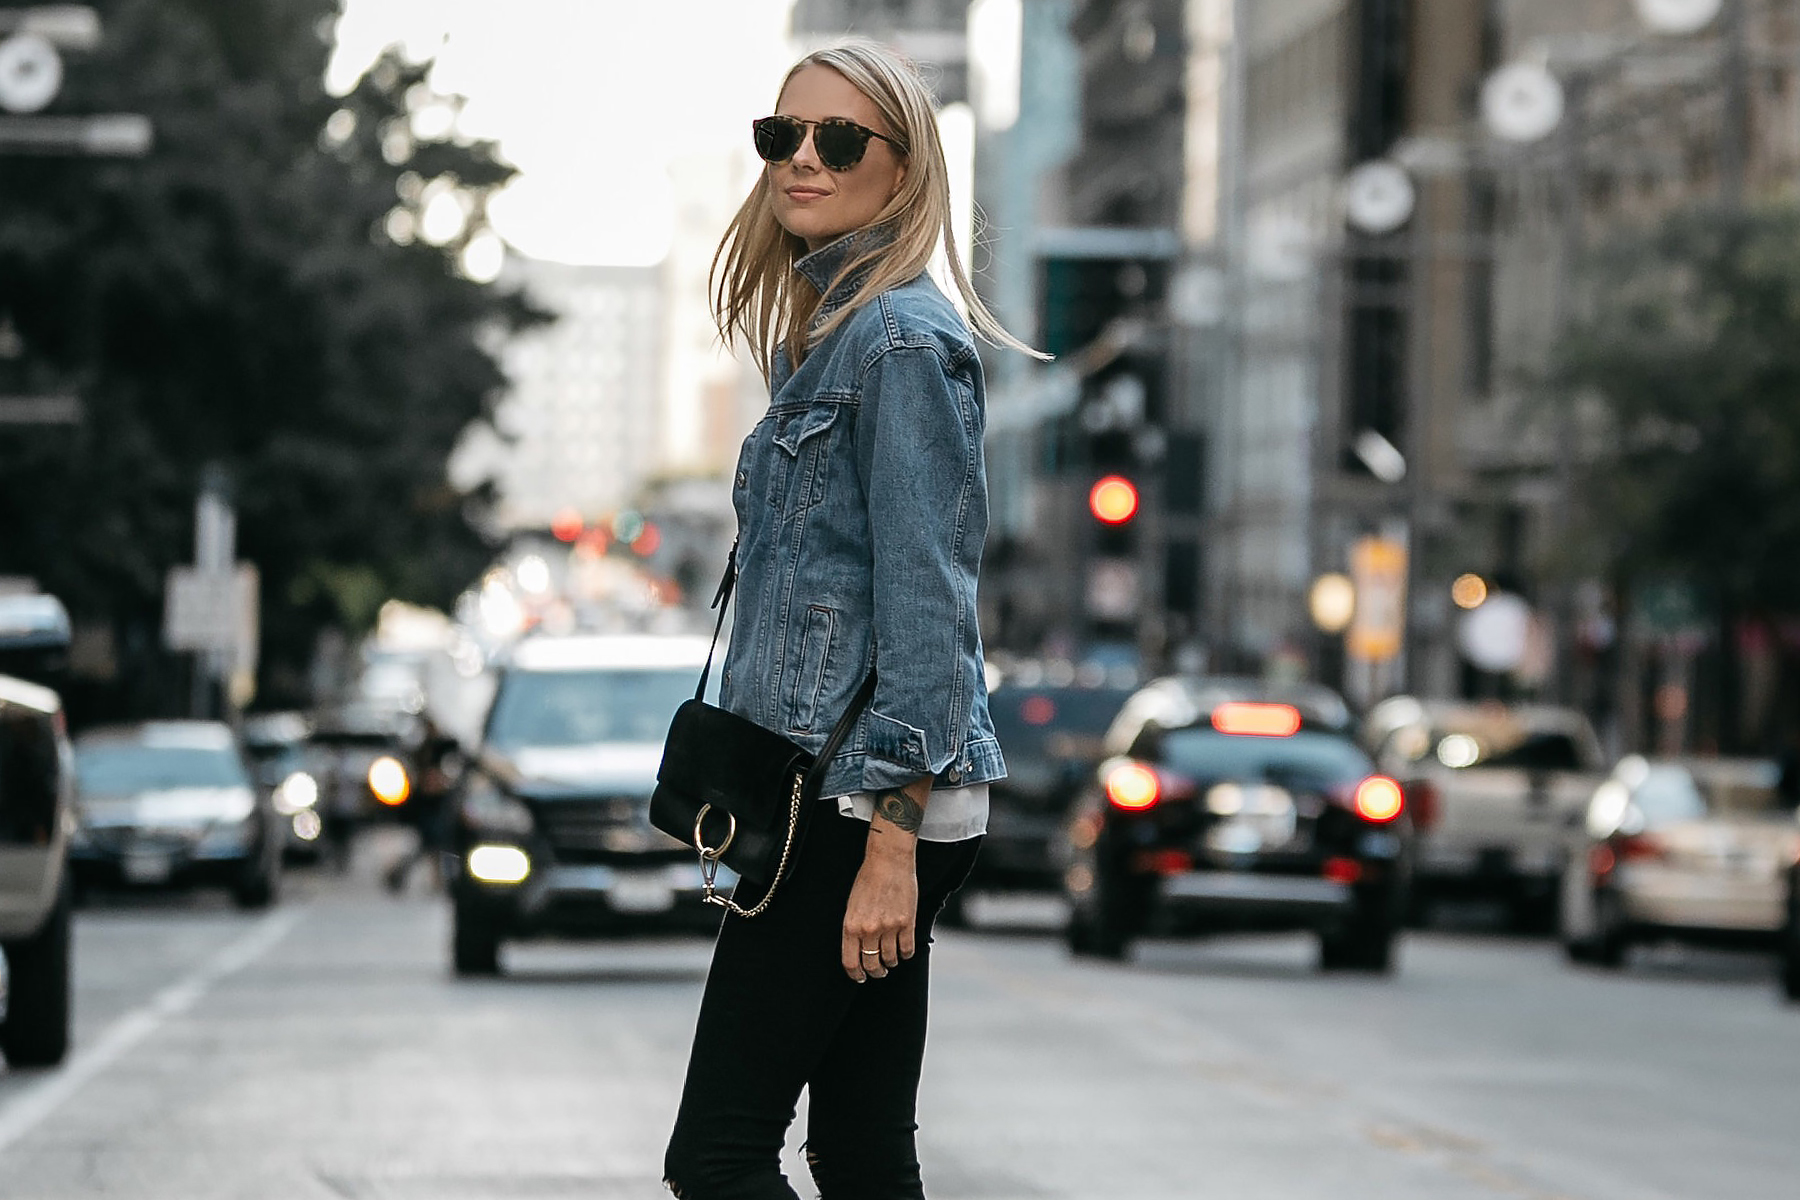 Blonde Woman Wearing Topshop Denim Jacket Chloe Faye Handbag Fashion Jackson Dallas Blogger Fashion Blogger Street Style